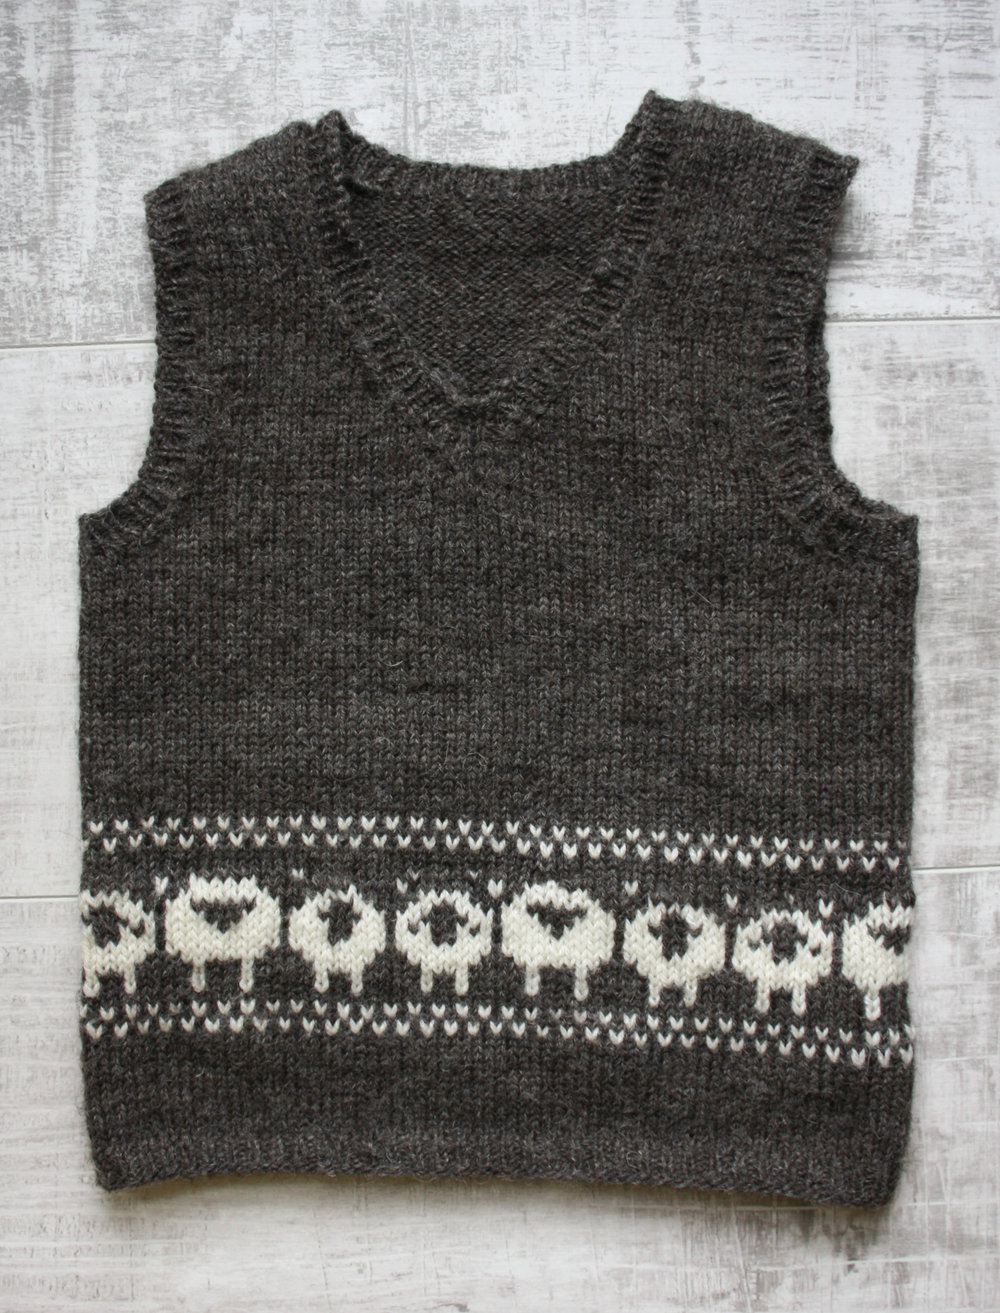 wee sheep vest in Jamieson & smith